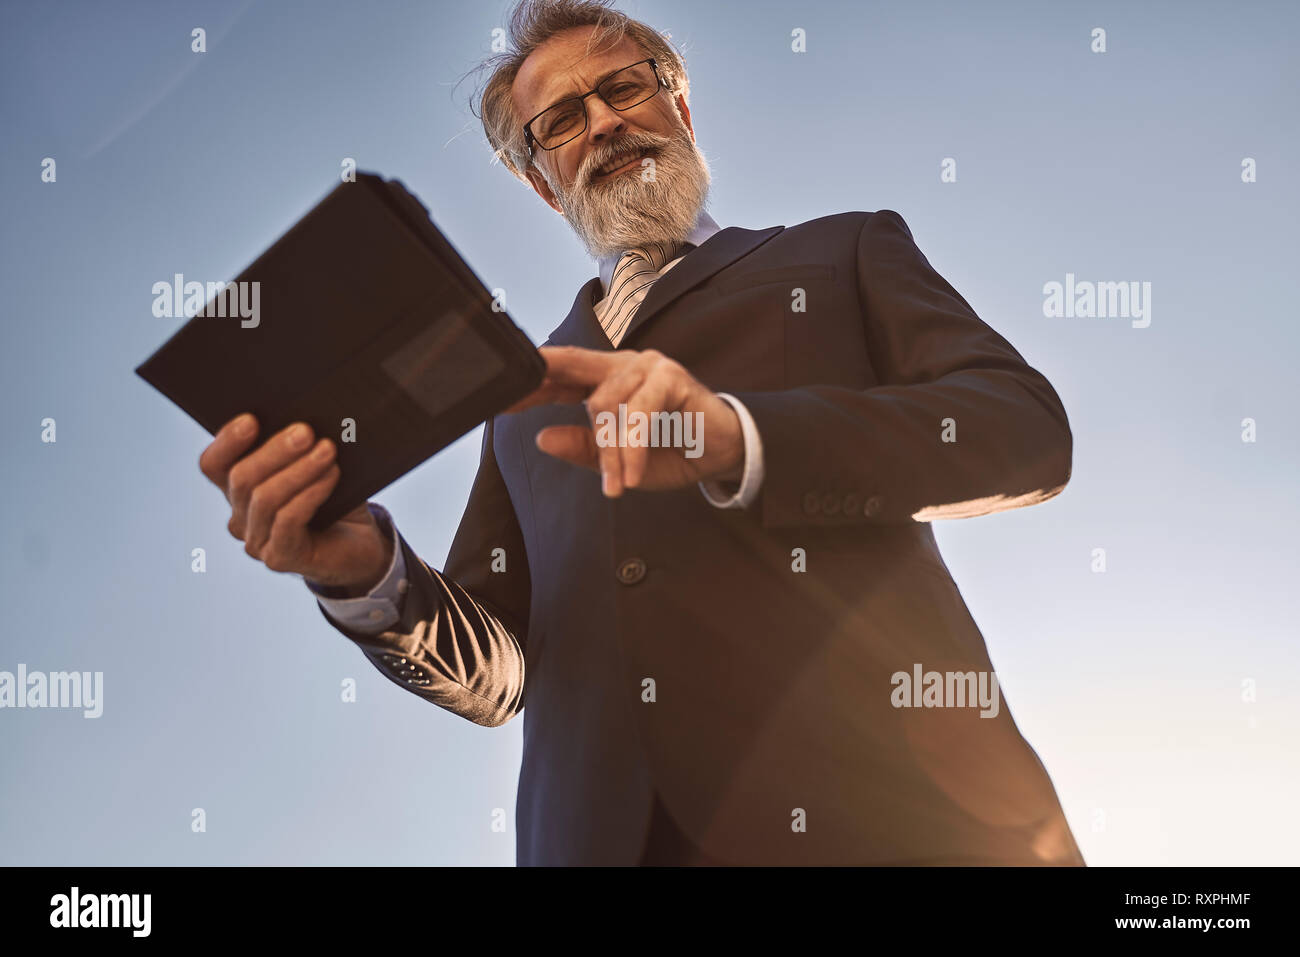 caucasian senior CEO using a smartphone and smart tablet while posing for the camera - Stock Image